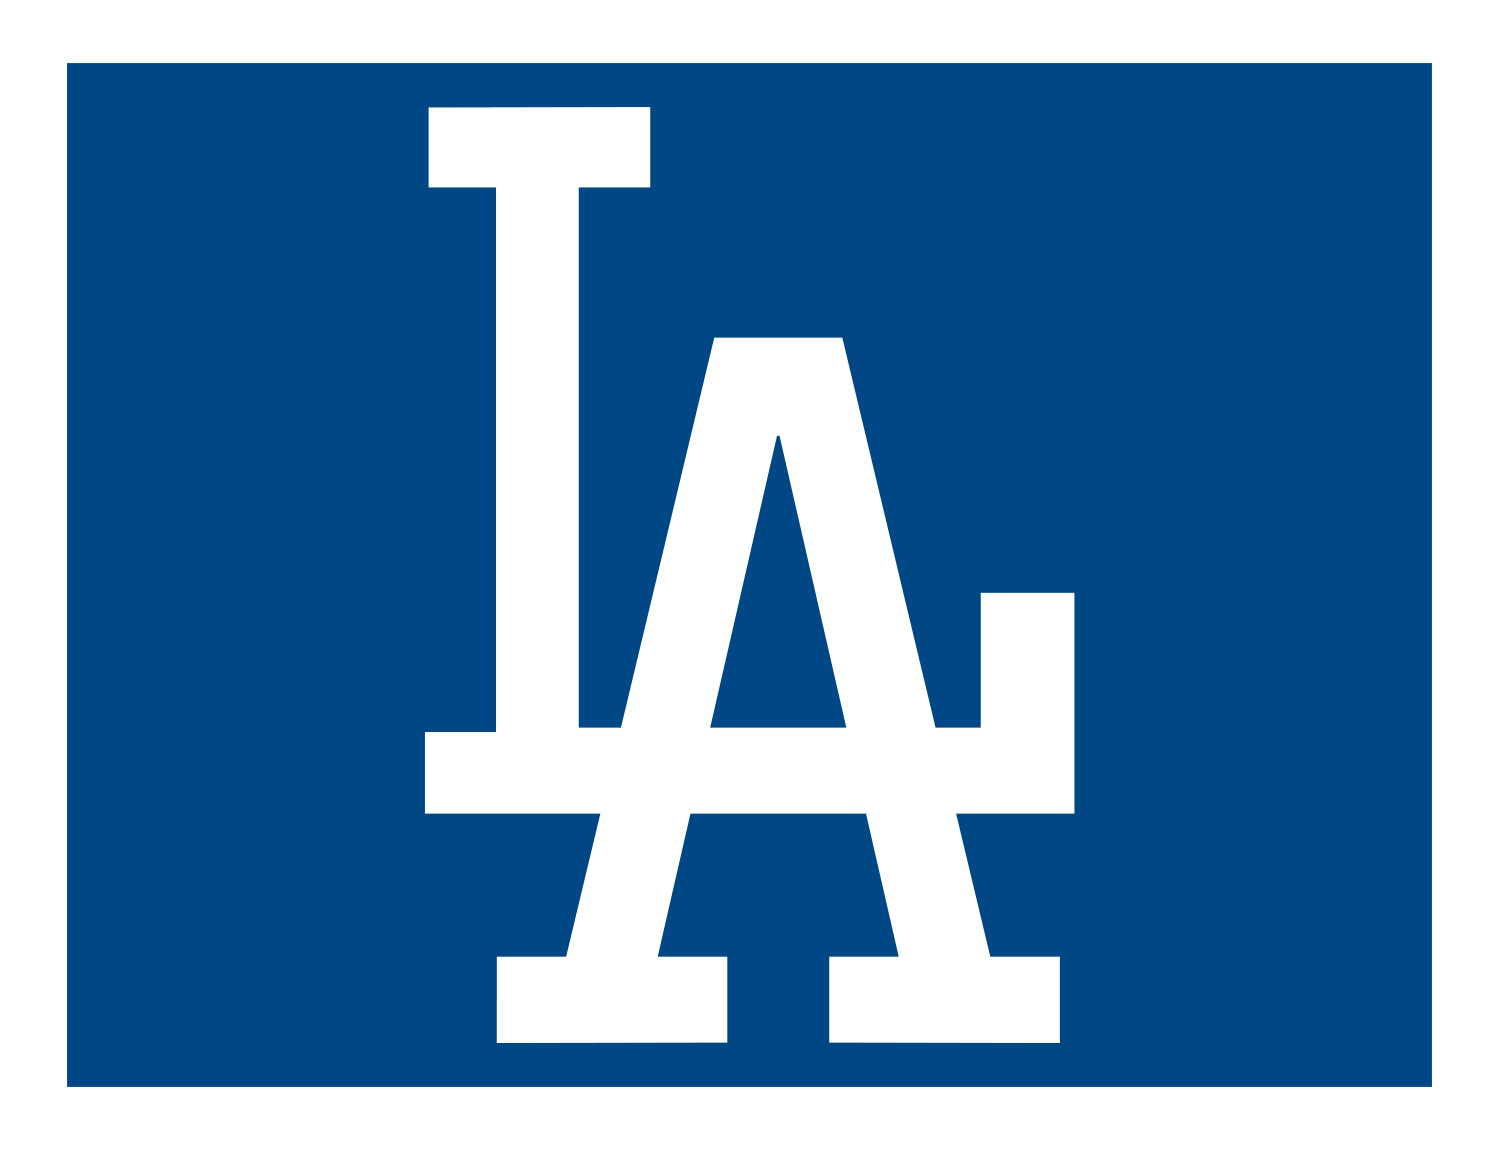 Different Car Logos >> Los Angeles Logo, Los Angeles Symbol Meaning, History and Evolution